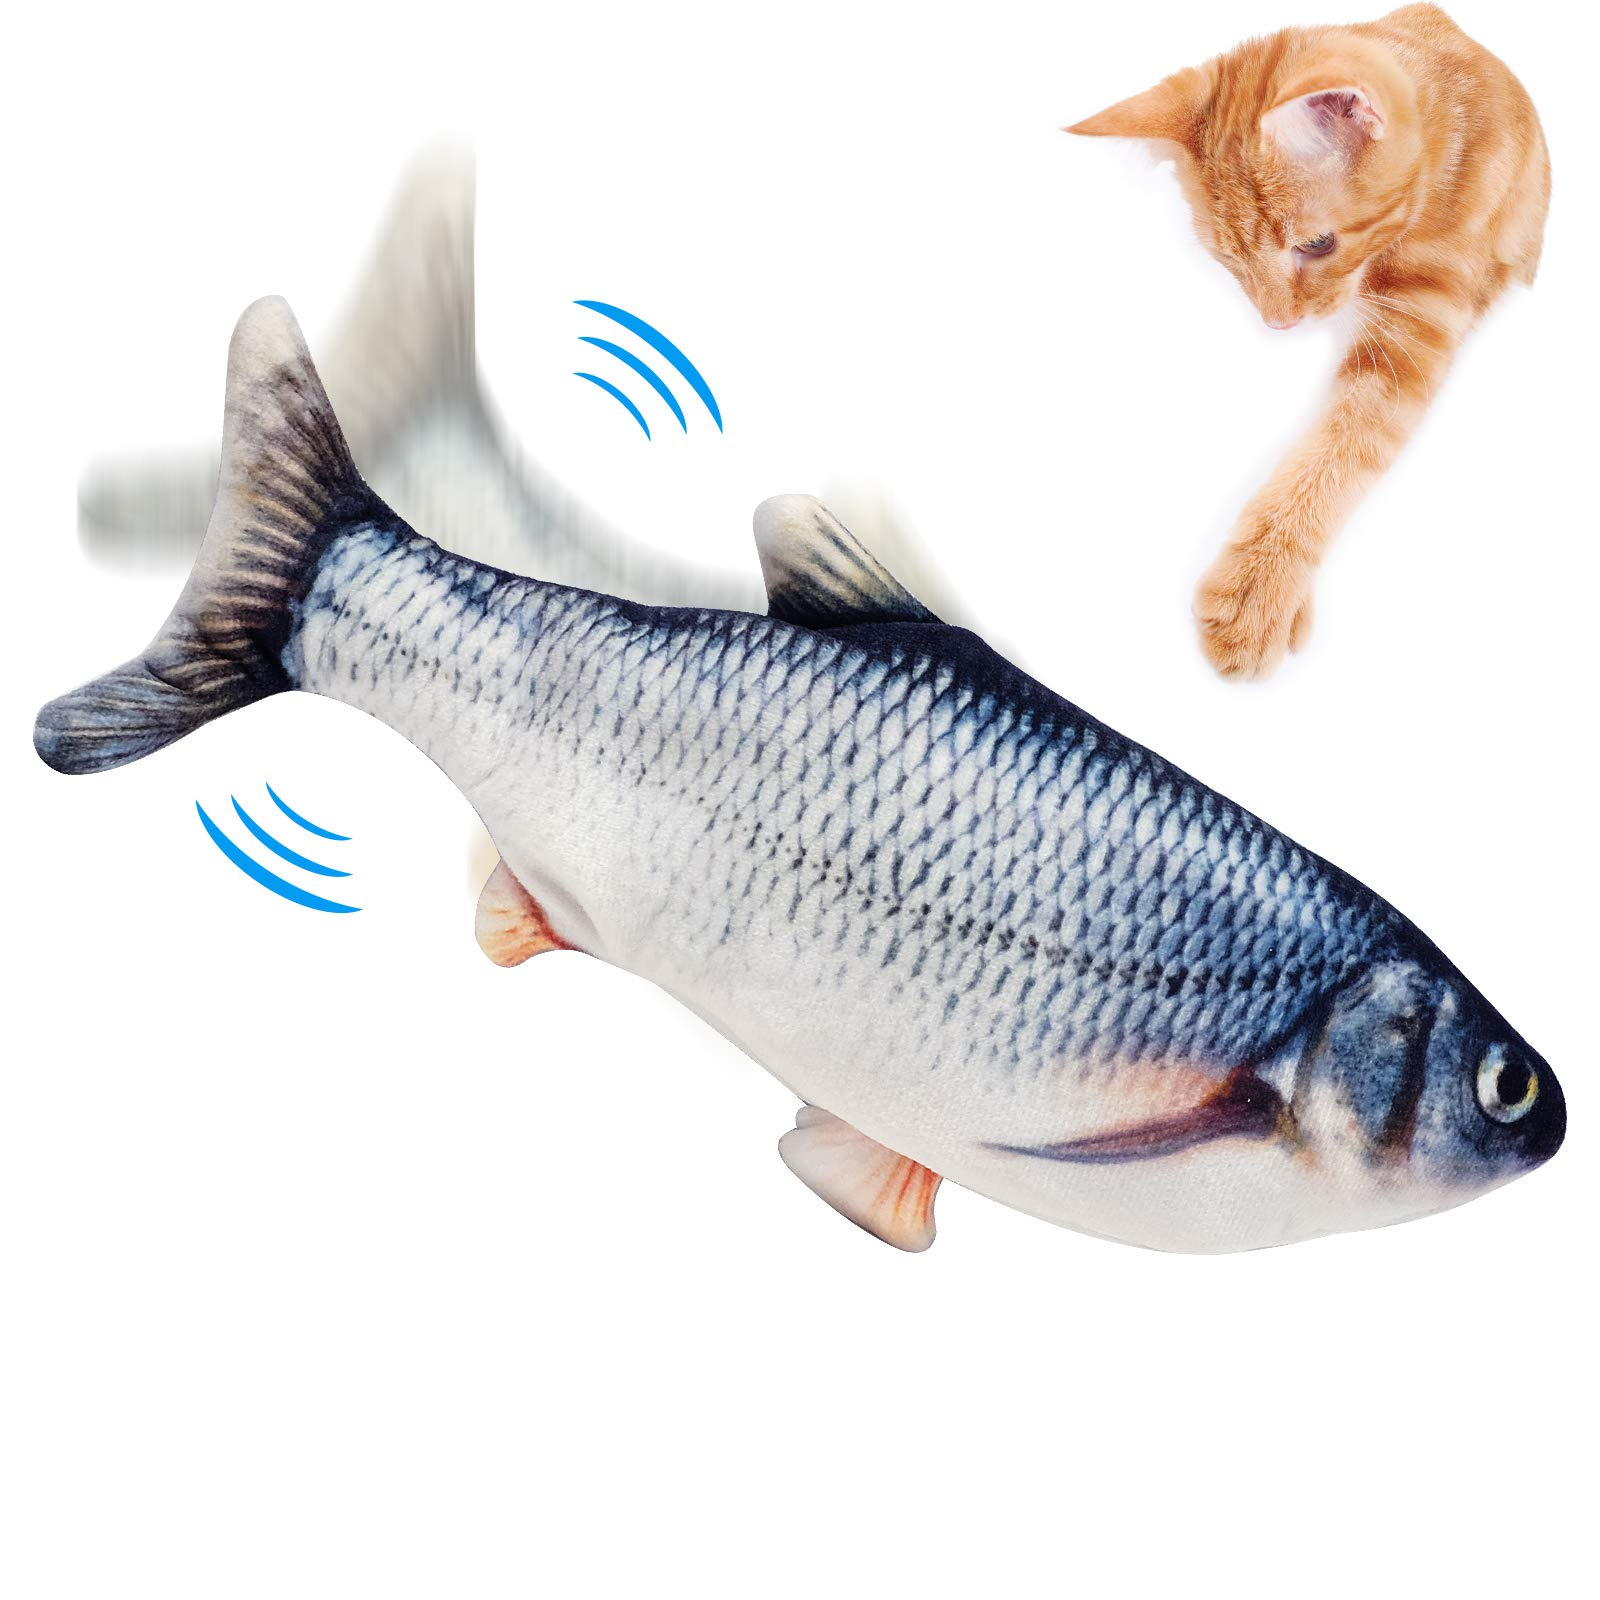 Floppy Fish Cat Toy, Realistic Flopping Fish Cat Toy, Interactive Cat Toys for Indoor Cats, Moving Fish Cat Toy, Kitten Toys, Catnip Toy, Cat Chew Toy, Automatic Cat Kicker Toy for Kitty Exercise